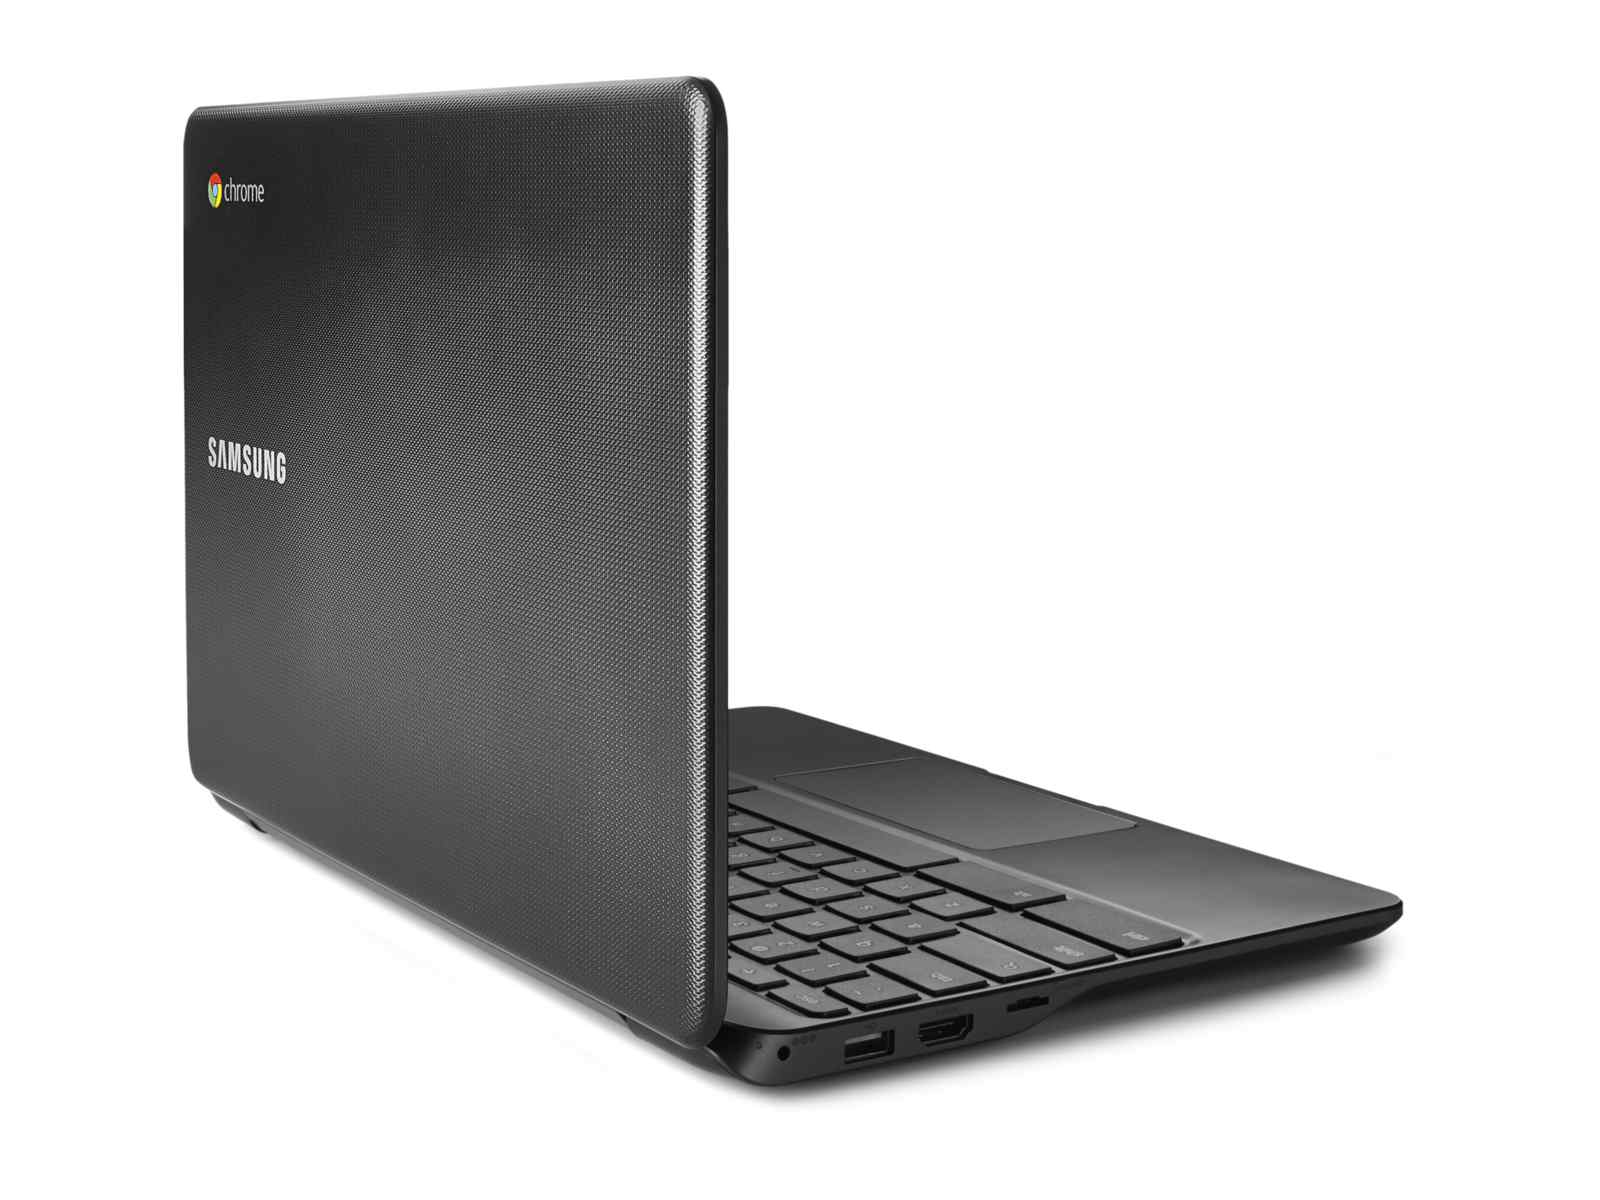 Samsung Chromebook 3 - photo 5